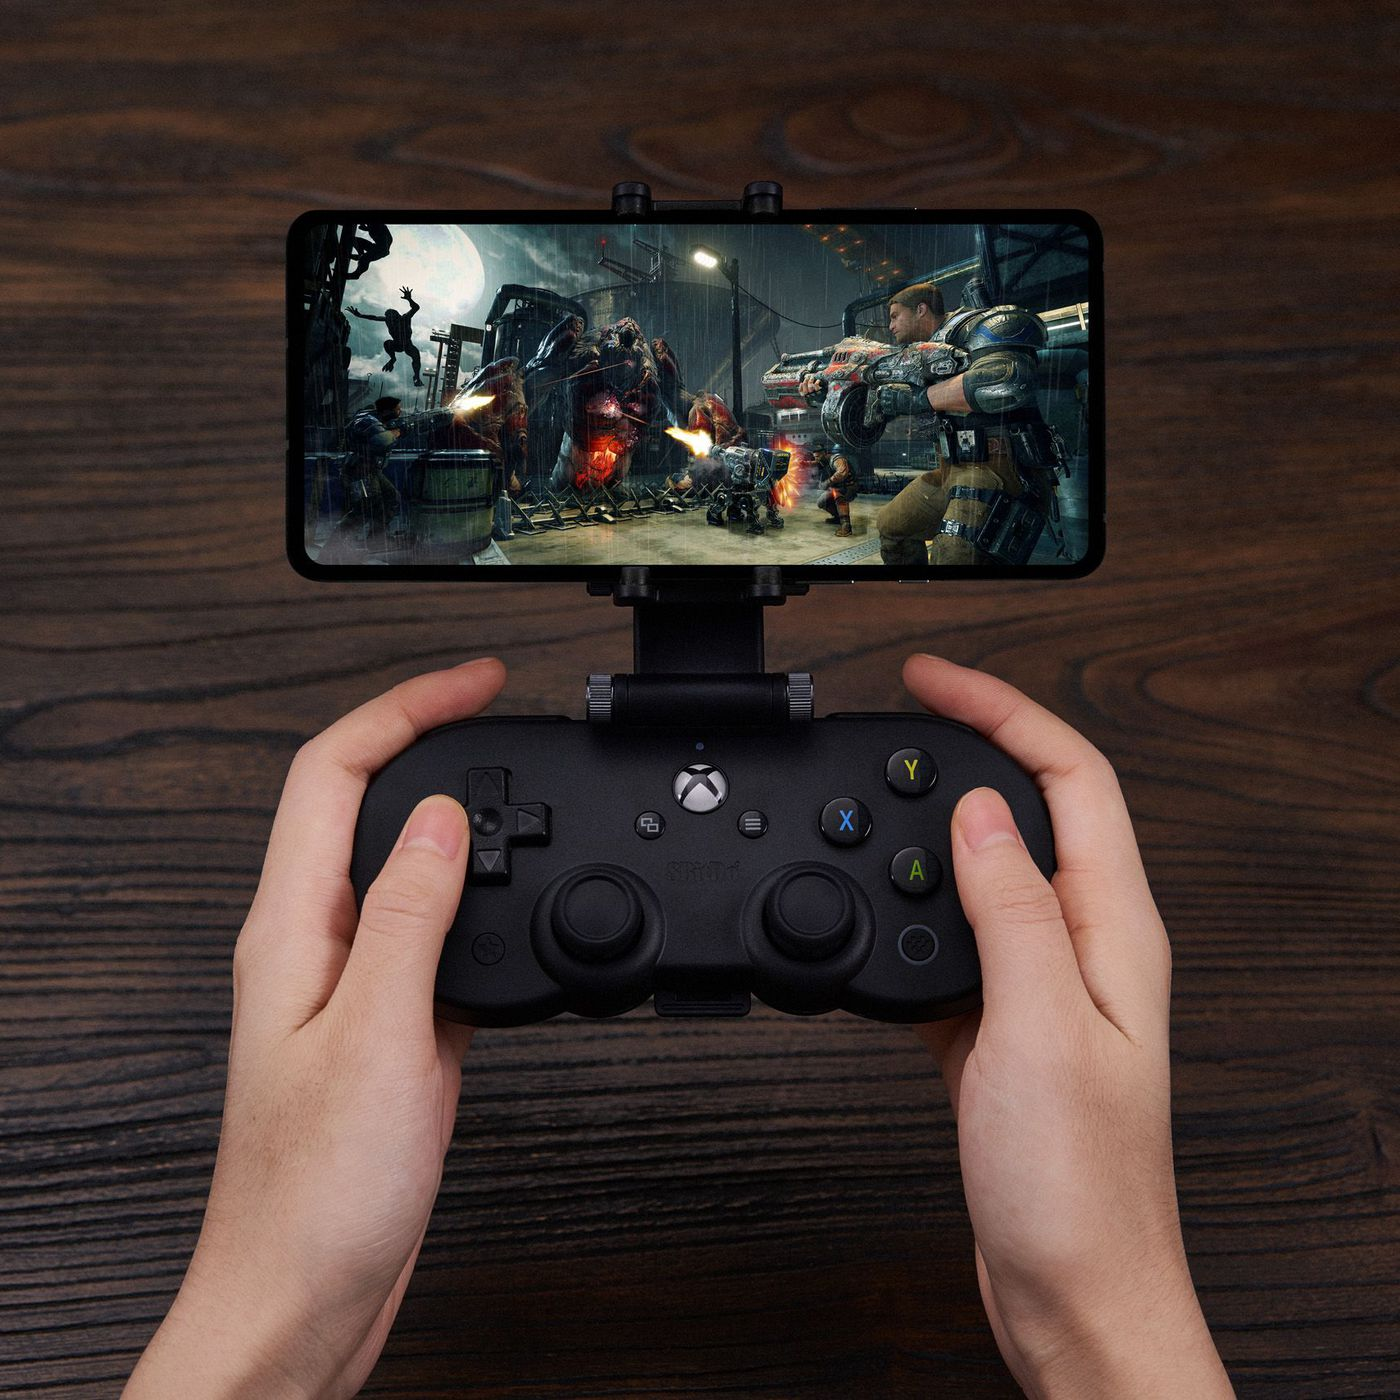 Microsoft Xcloud Launch How To To Play Xbox Games From Your Phone The Verge